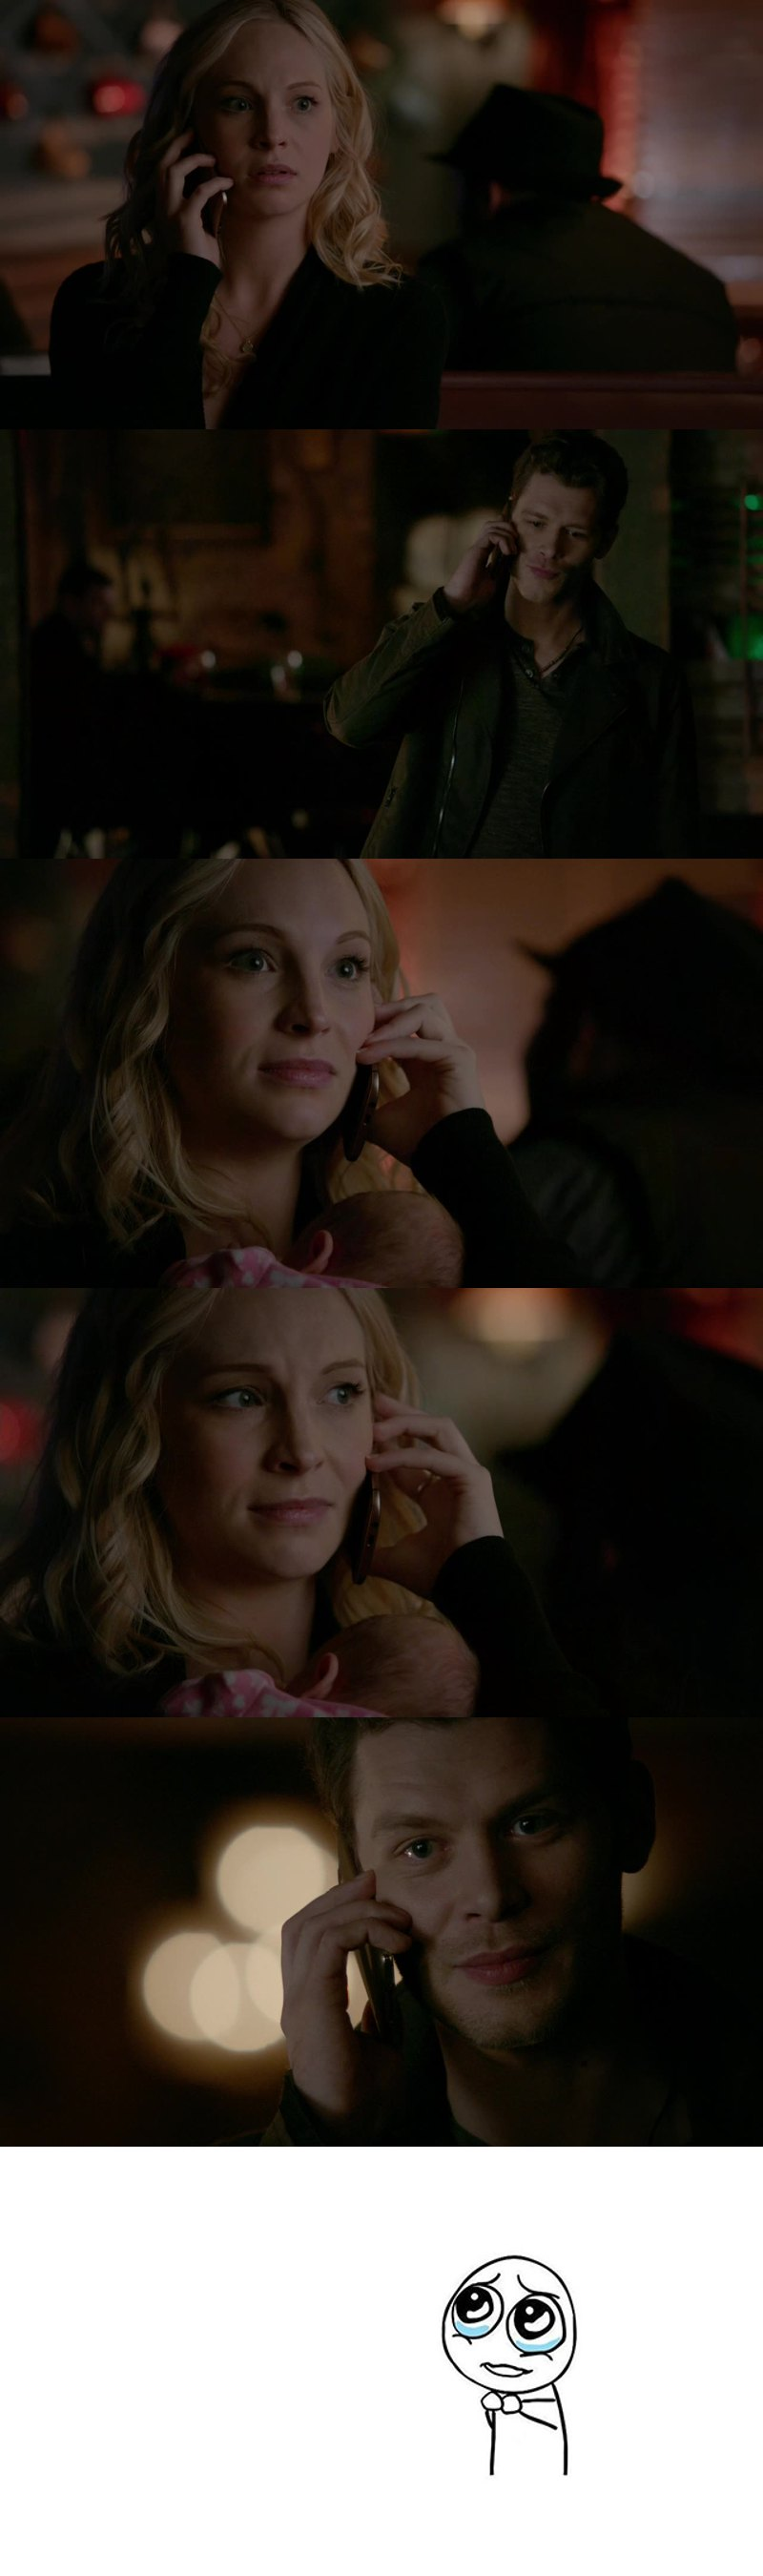 """""""Hello, love""""  Let's talk about Caroline's face when she recognizes Klaus' voice.  Let's talk about the parallels: 5x11 Caroline: """"I'm in college. I'm building a life for myself. I have plans and a future and things that I want"""" 7x14 Klaus: """"So, here you are, in college, building a life for yourself, plans, a future, things that you want""""  Let's talk about how neither of them forgot anything that happened, you can read it in their eyes.  Let's talk about how Klaus is willing to change his mind about helping Stefan because of her, because of her happiness, again; how he is willing to put himself aside to put her happiness first.   Let's talk about """"It's not a crime to love what you cannot explain"""".  Let's talk about how Klaus pronounces """"Caroline"""", with his voice full of emotions.  Let's talk about the way Caroline's eyes are watering when Klaus says """"Goodbye, Caroline"""".  They're not giving up in each other, never in a million years.  """"He's your first love. I intend to be your last, HOWEVER LONG IT TAKES"""". And I will be here, waiting for them, however long it takes."""